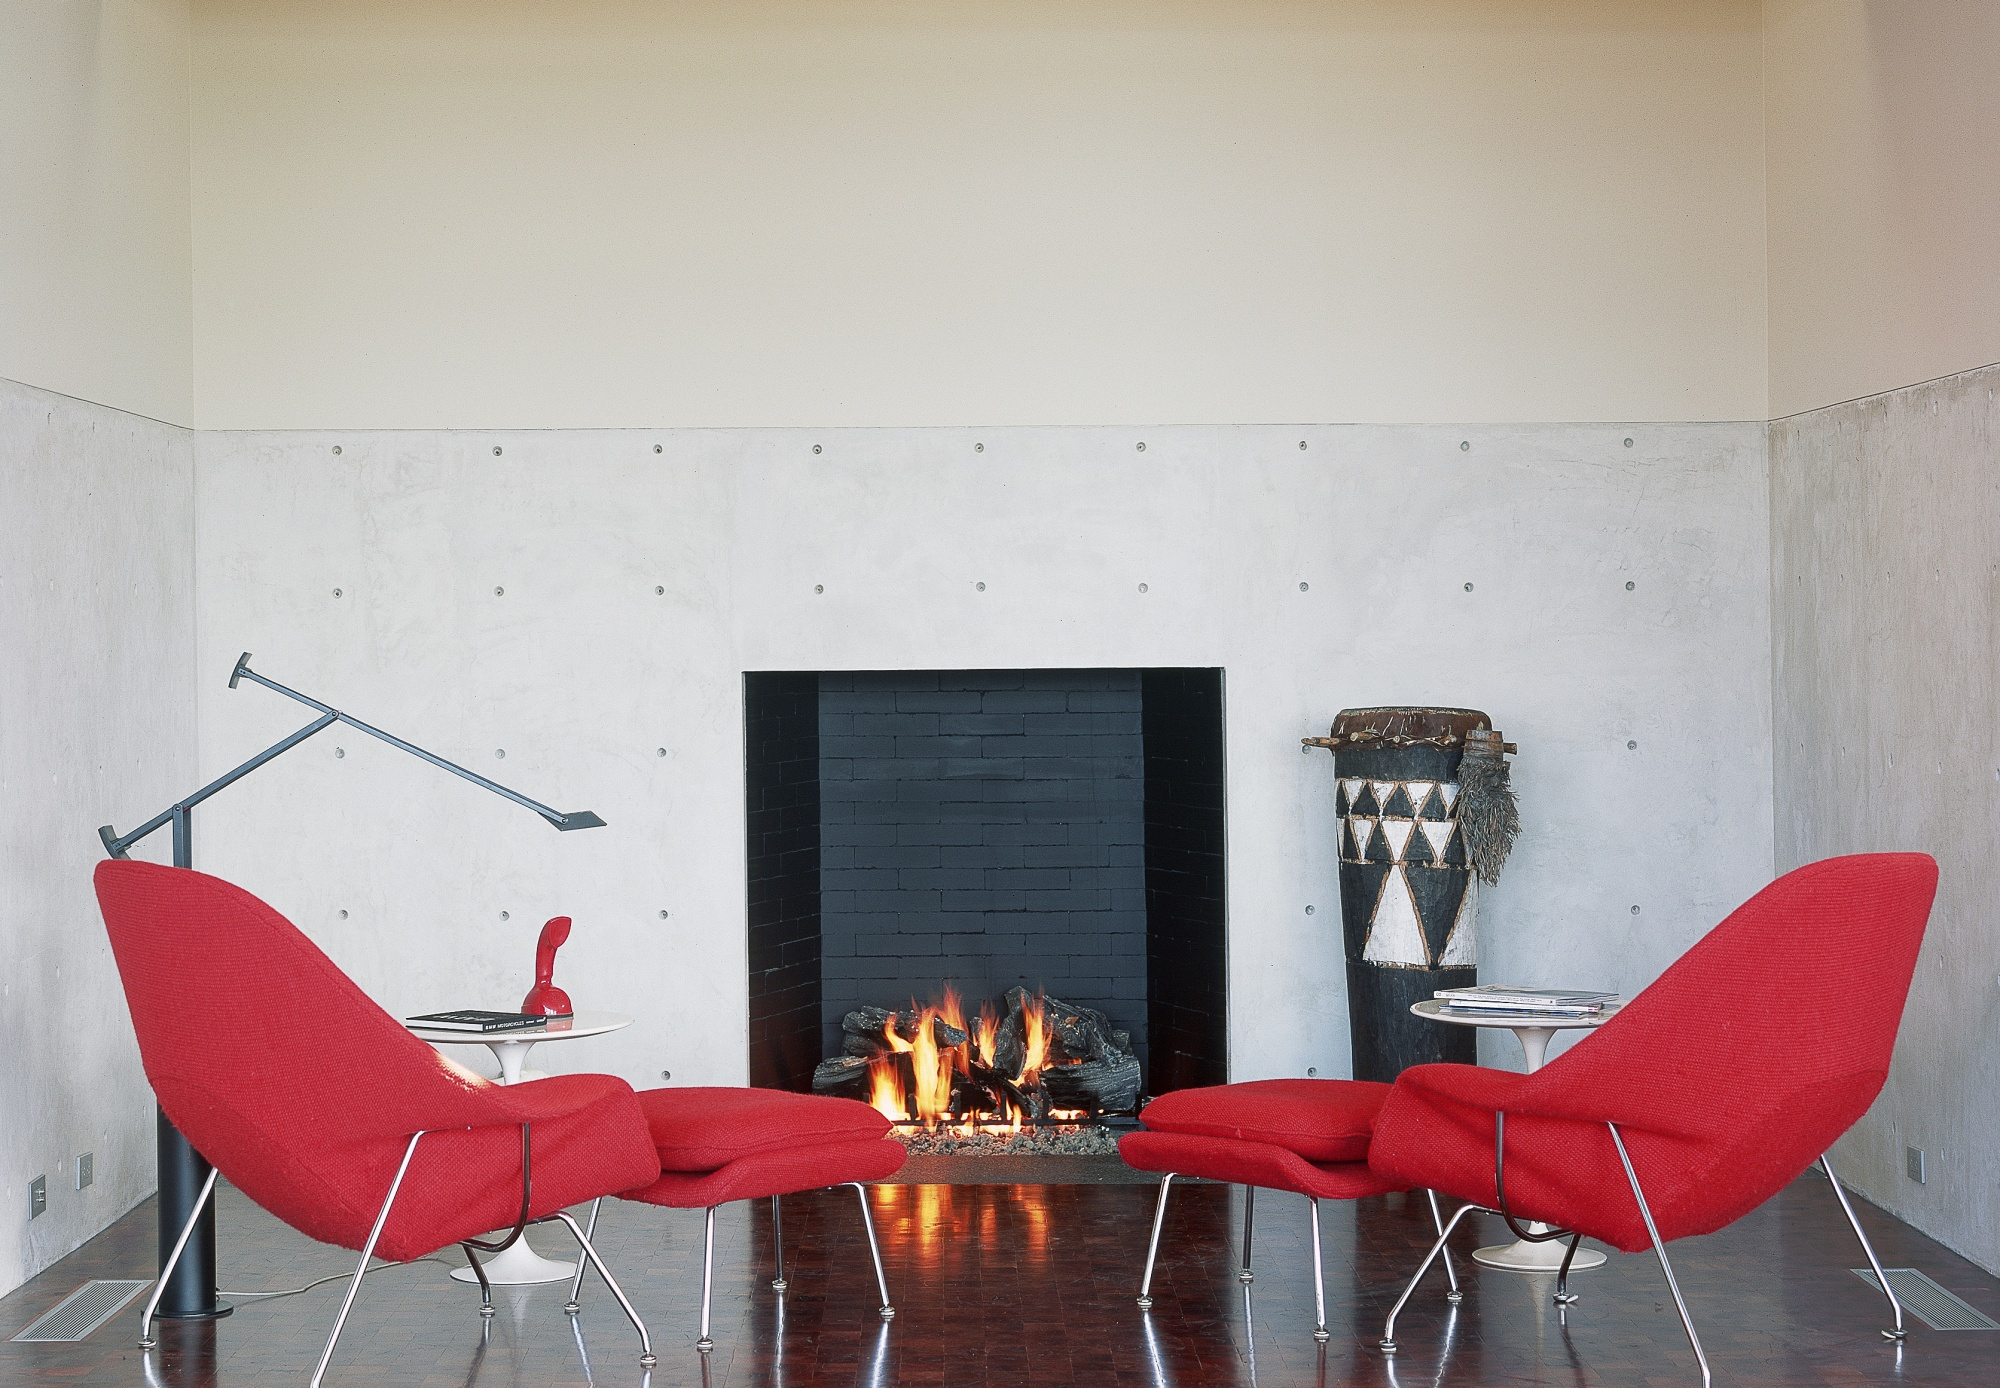 Sarrinen Womb Chairs respond to the warmth of the fireplace.